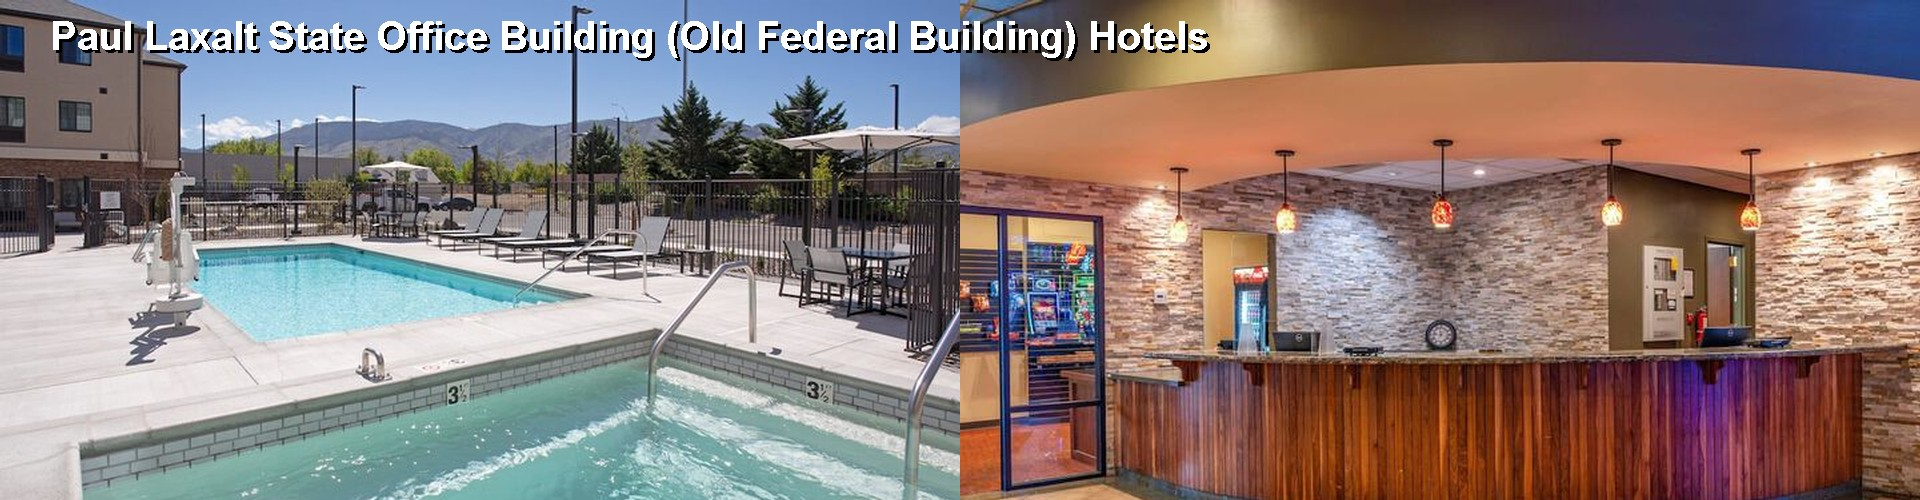 5 Best Hotels near Paul Laxalt State Office Building (Old Federal Building)